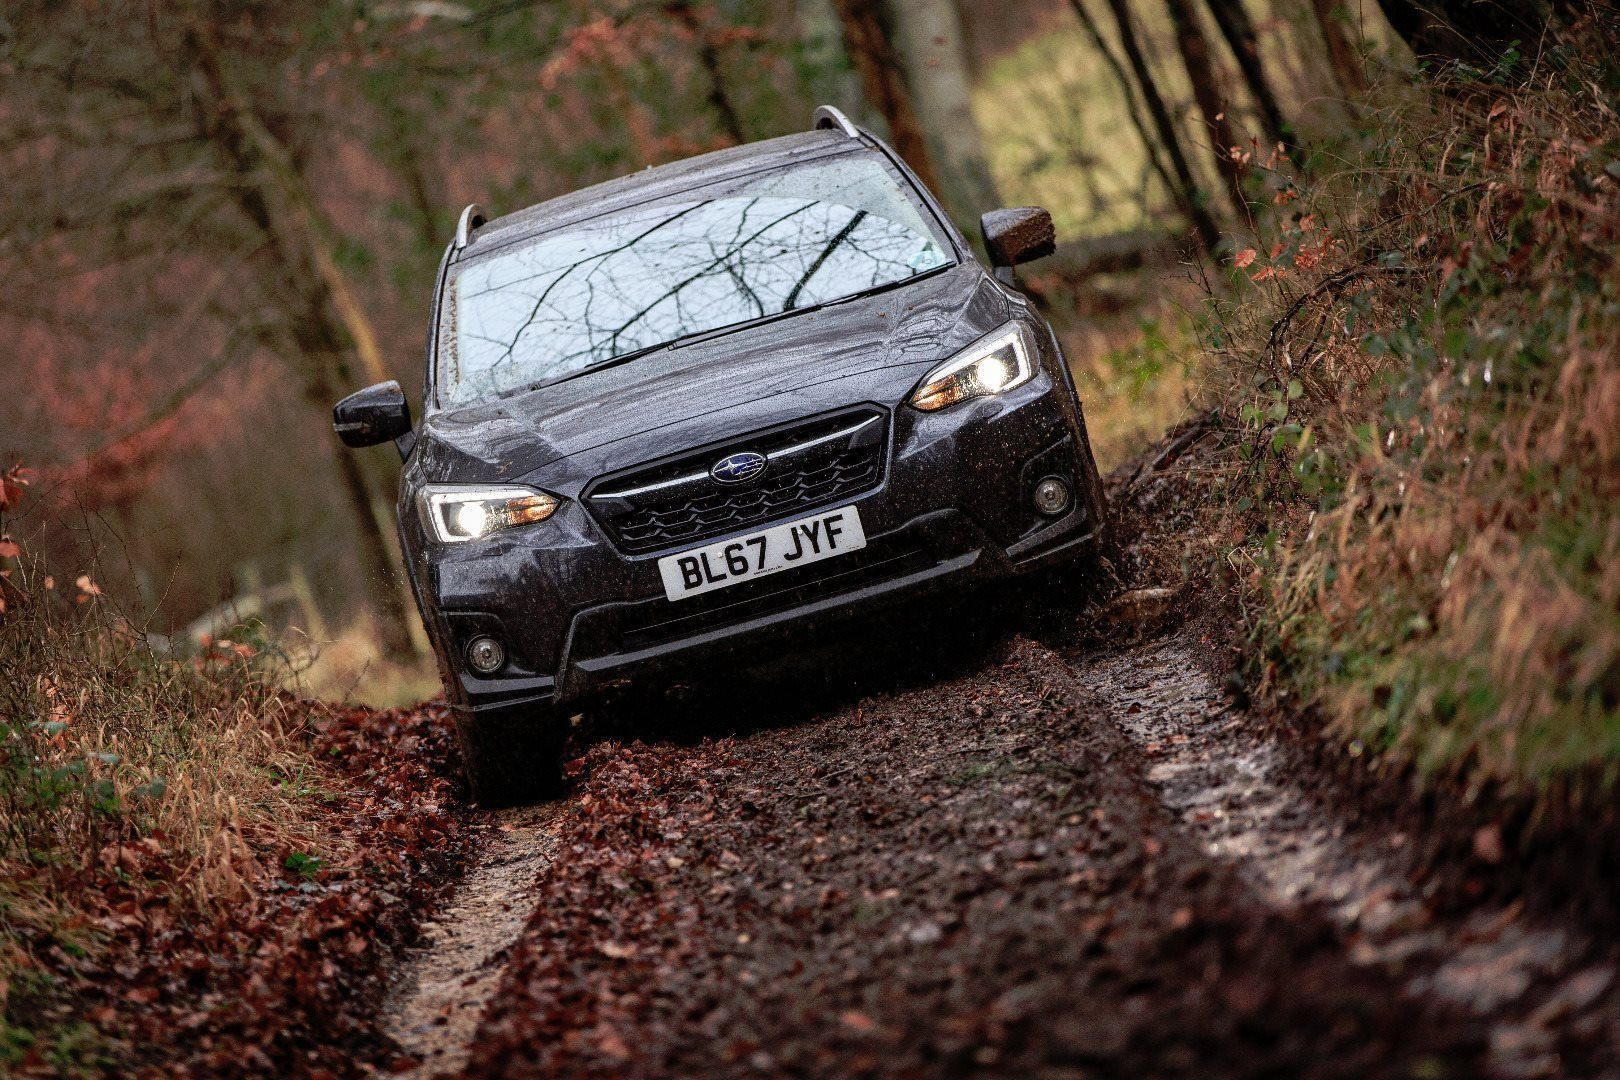 SUBARU UK STRENGTHENS ITS DEALER NETWORK WITH NEW APPOINTMENTS